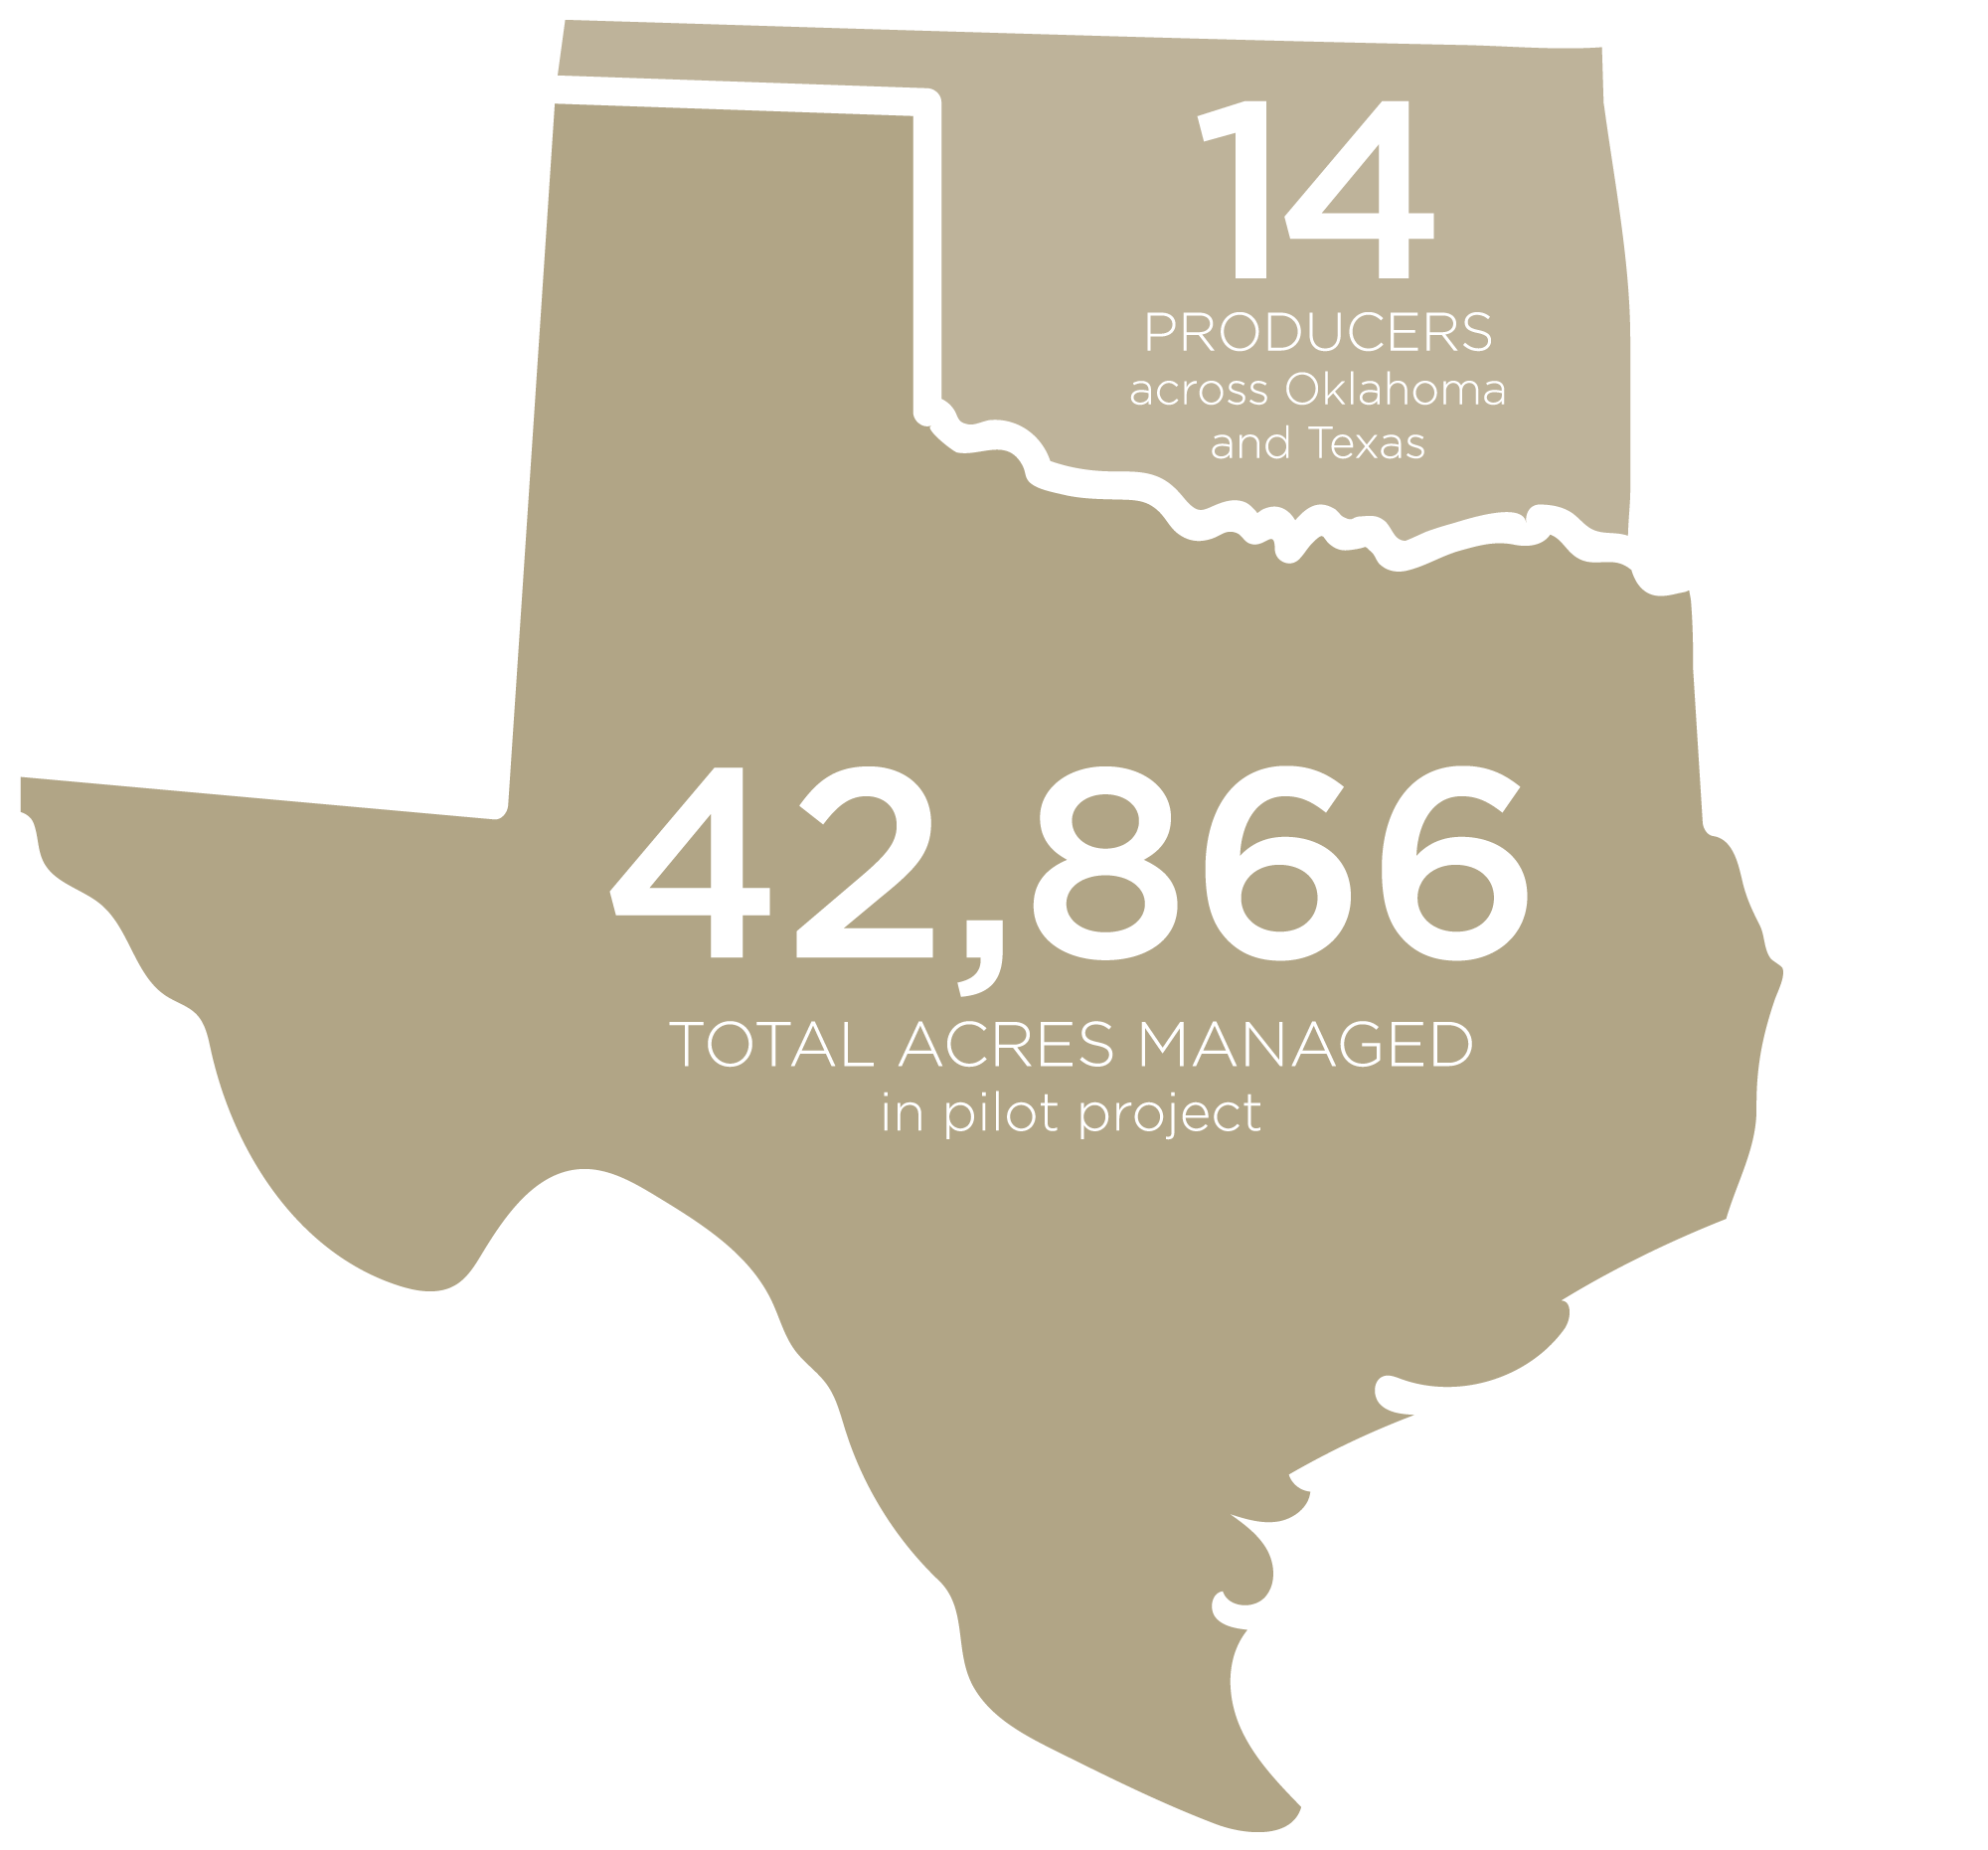 14 Producers across Oklahoma and Texas. 42,866 Total Acres Managed in Pilot Project